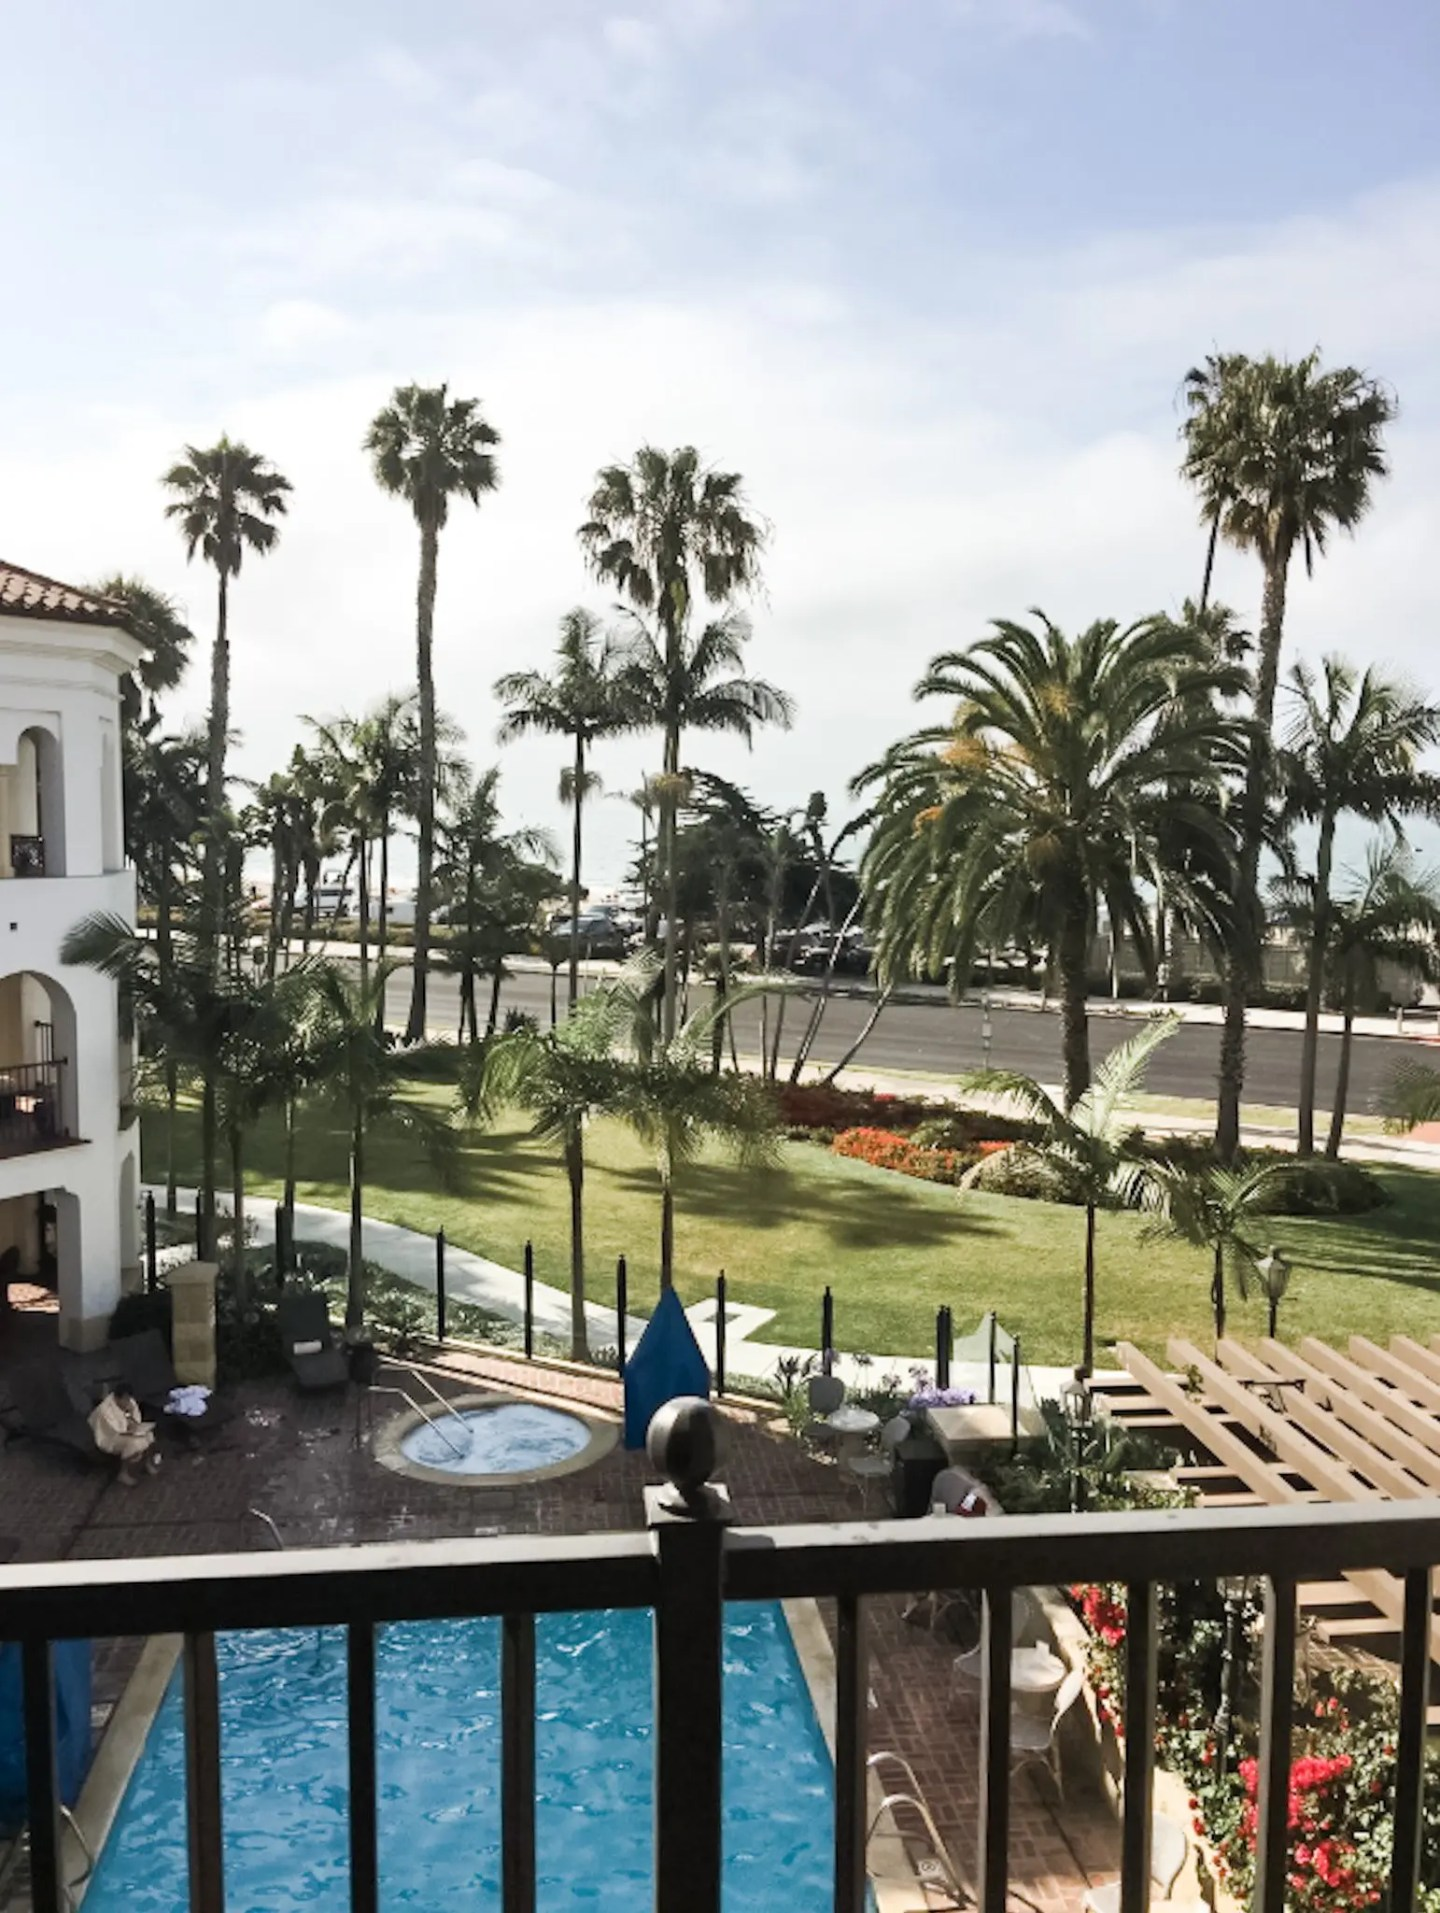 View from our room at the Santa Barbara Inn, nestled in between the beautiful palms